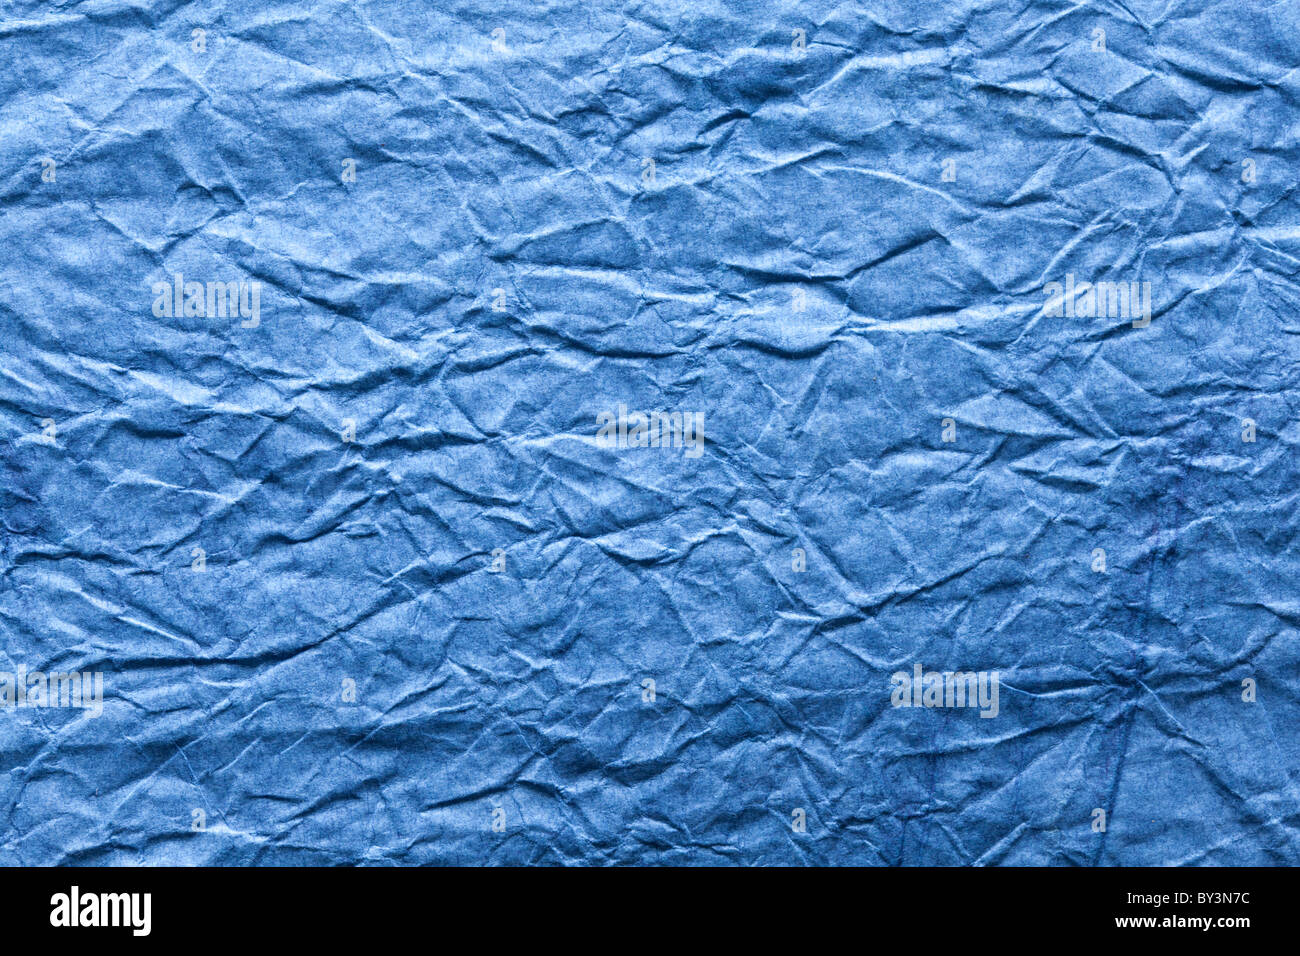 Image texture of crumpled blue paper. - Stock Image